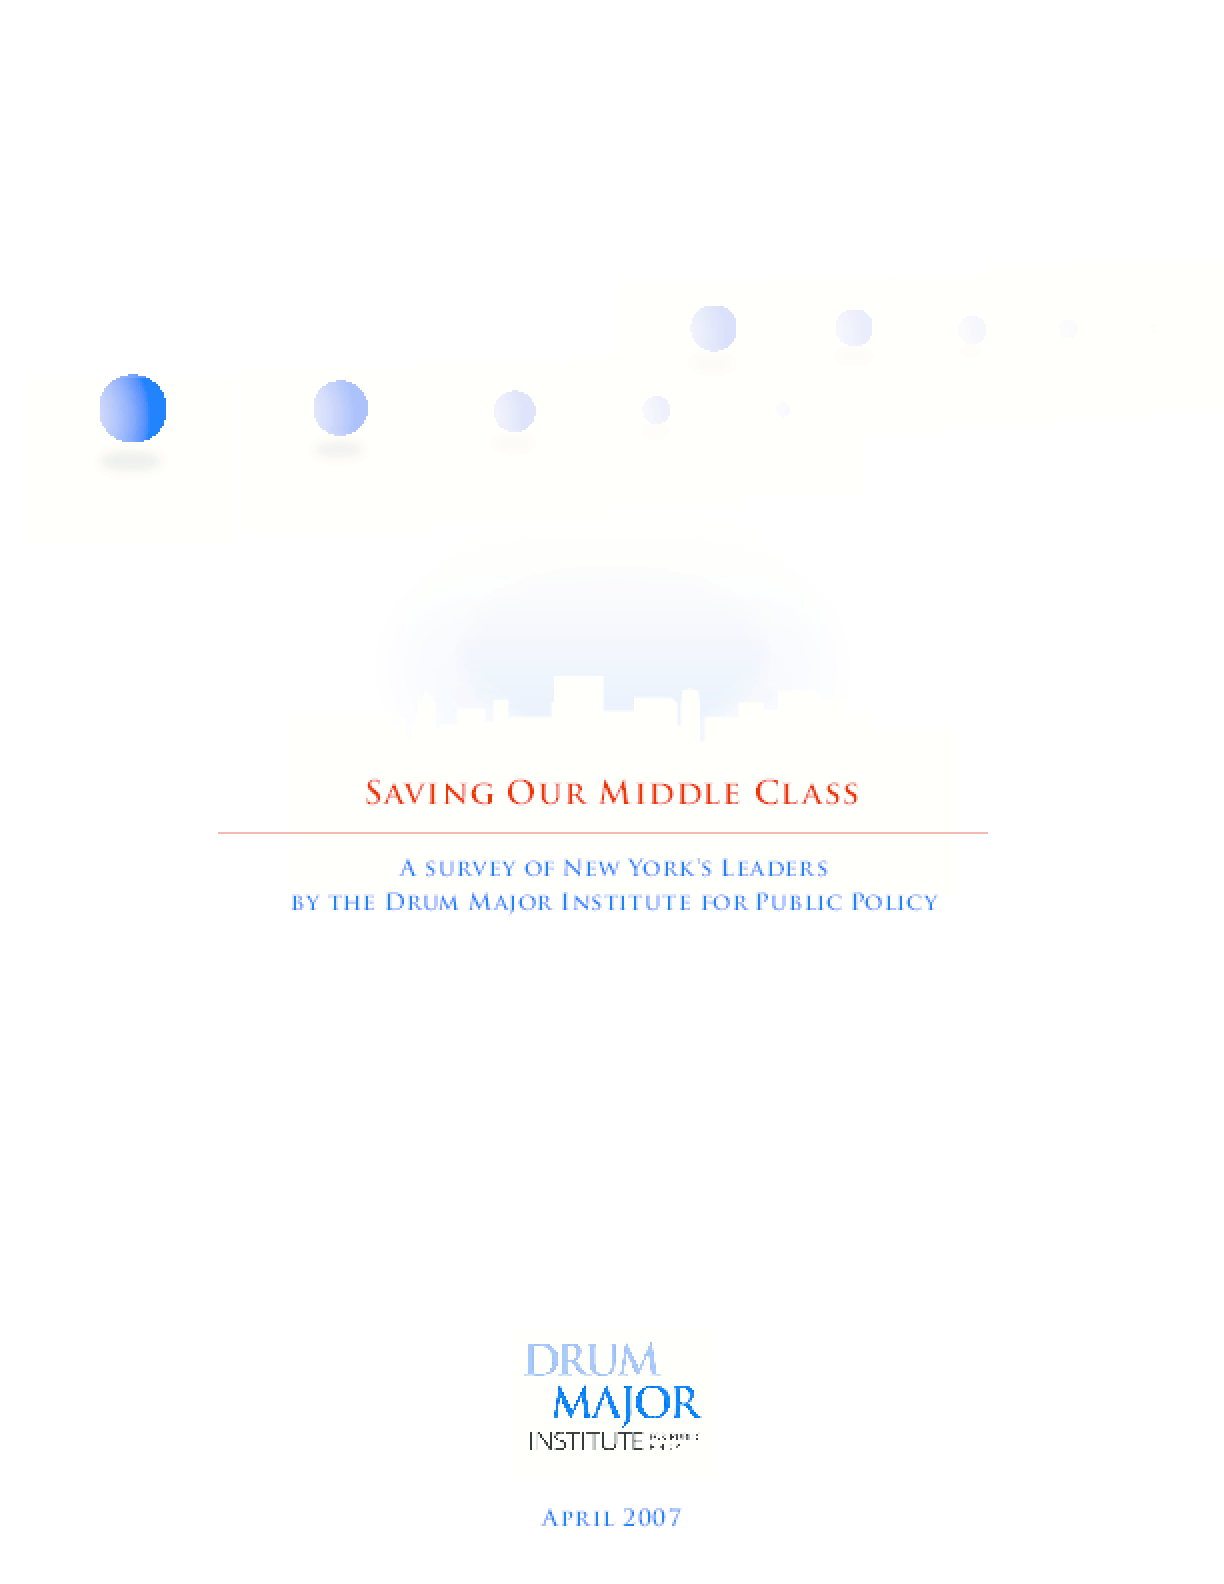 Saving Our Middle Class: A Survey of New York's Leaders By the Drum Major Institute for Public Policy